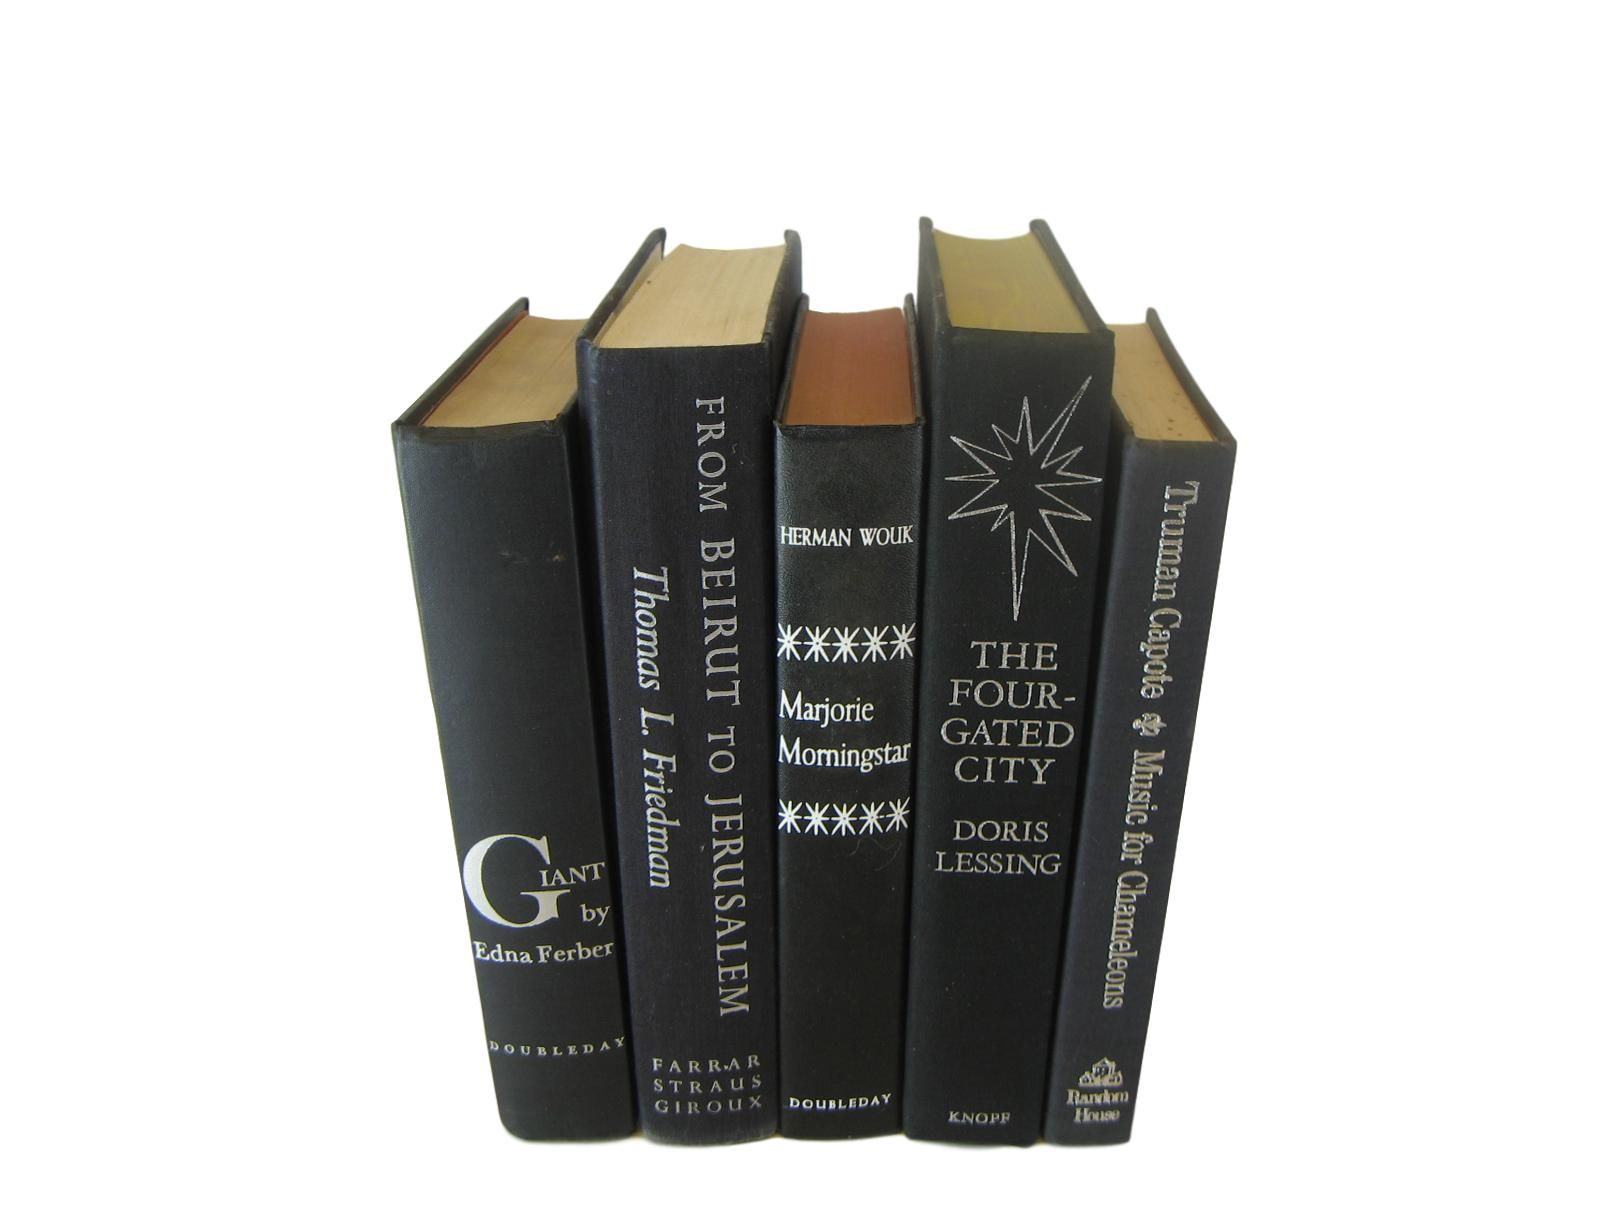 Black Vintage Books, Decorative Set, S/5 - Decades of Vintage